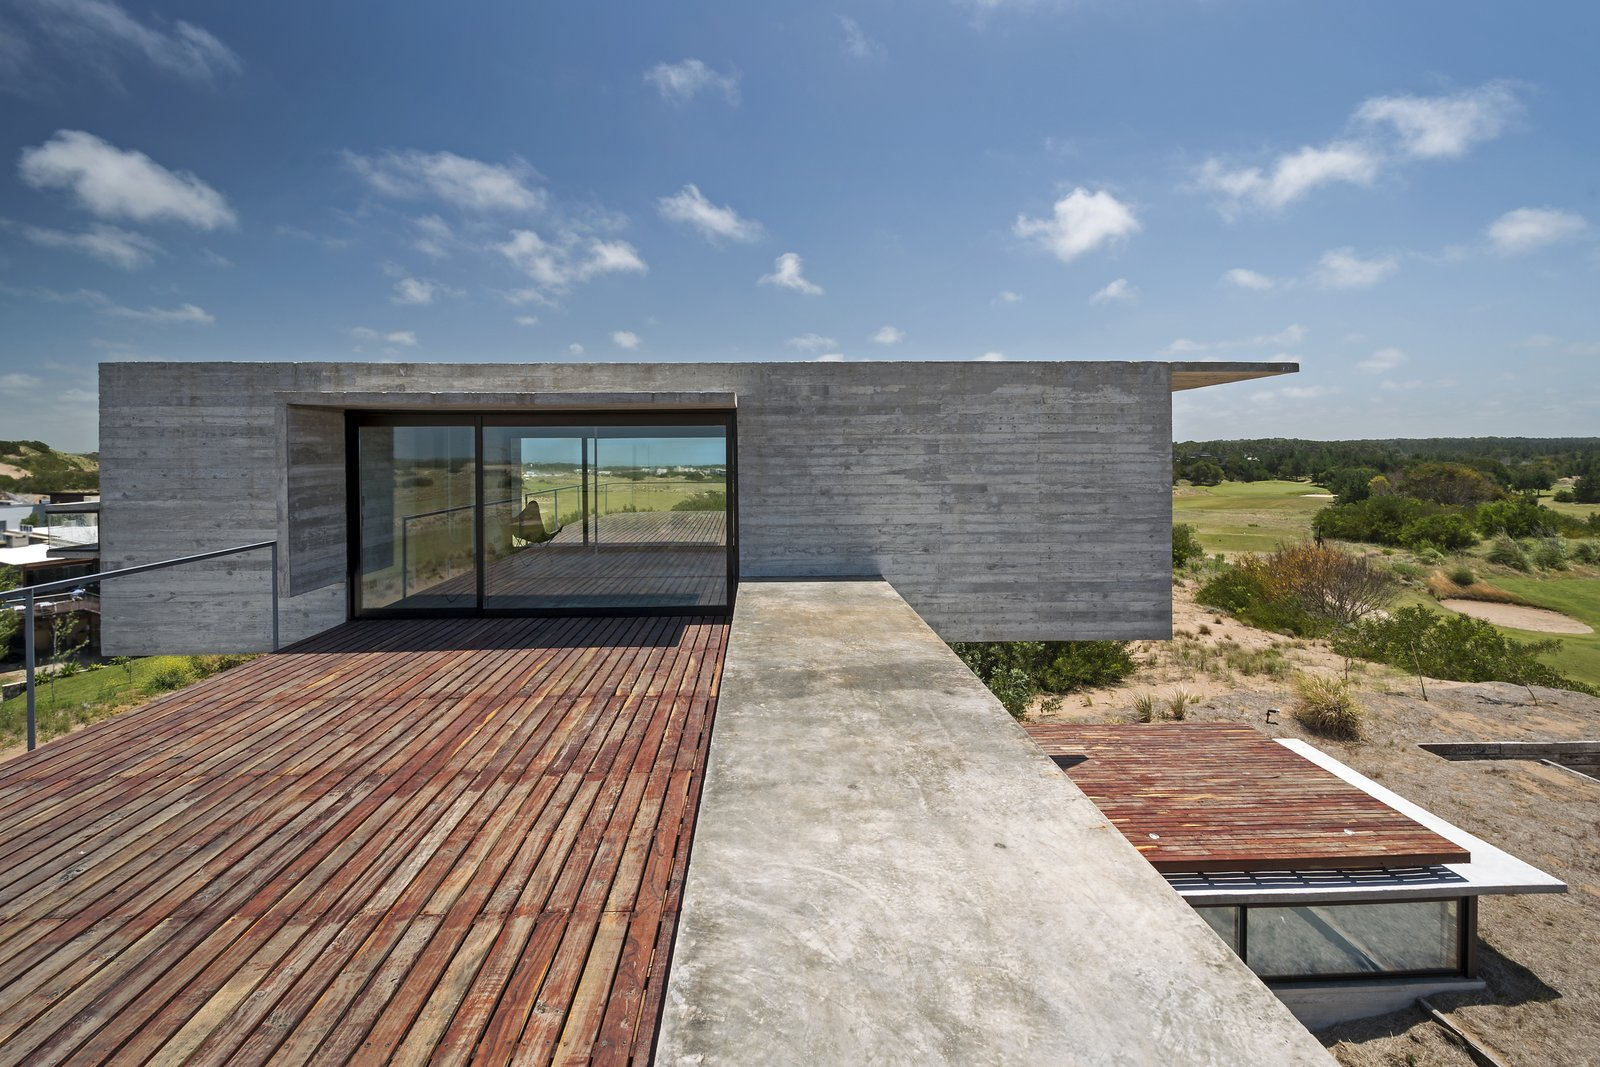 The large outdoor terraces make the outdoors a major part of the house's design. Tagged: Outdoor, Side Yard, Wood Patio, Porch, Deck, Large Patio, Porch, Deck, and Metal Fences, Wall.  Best Photos from This Stacked Concrete Home Is Not Your Typical Golf Course Dwelling